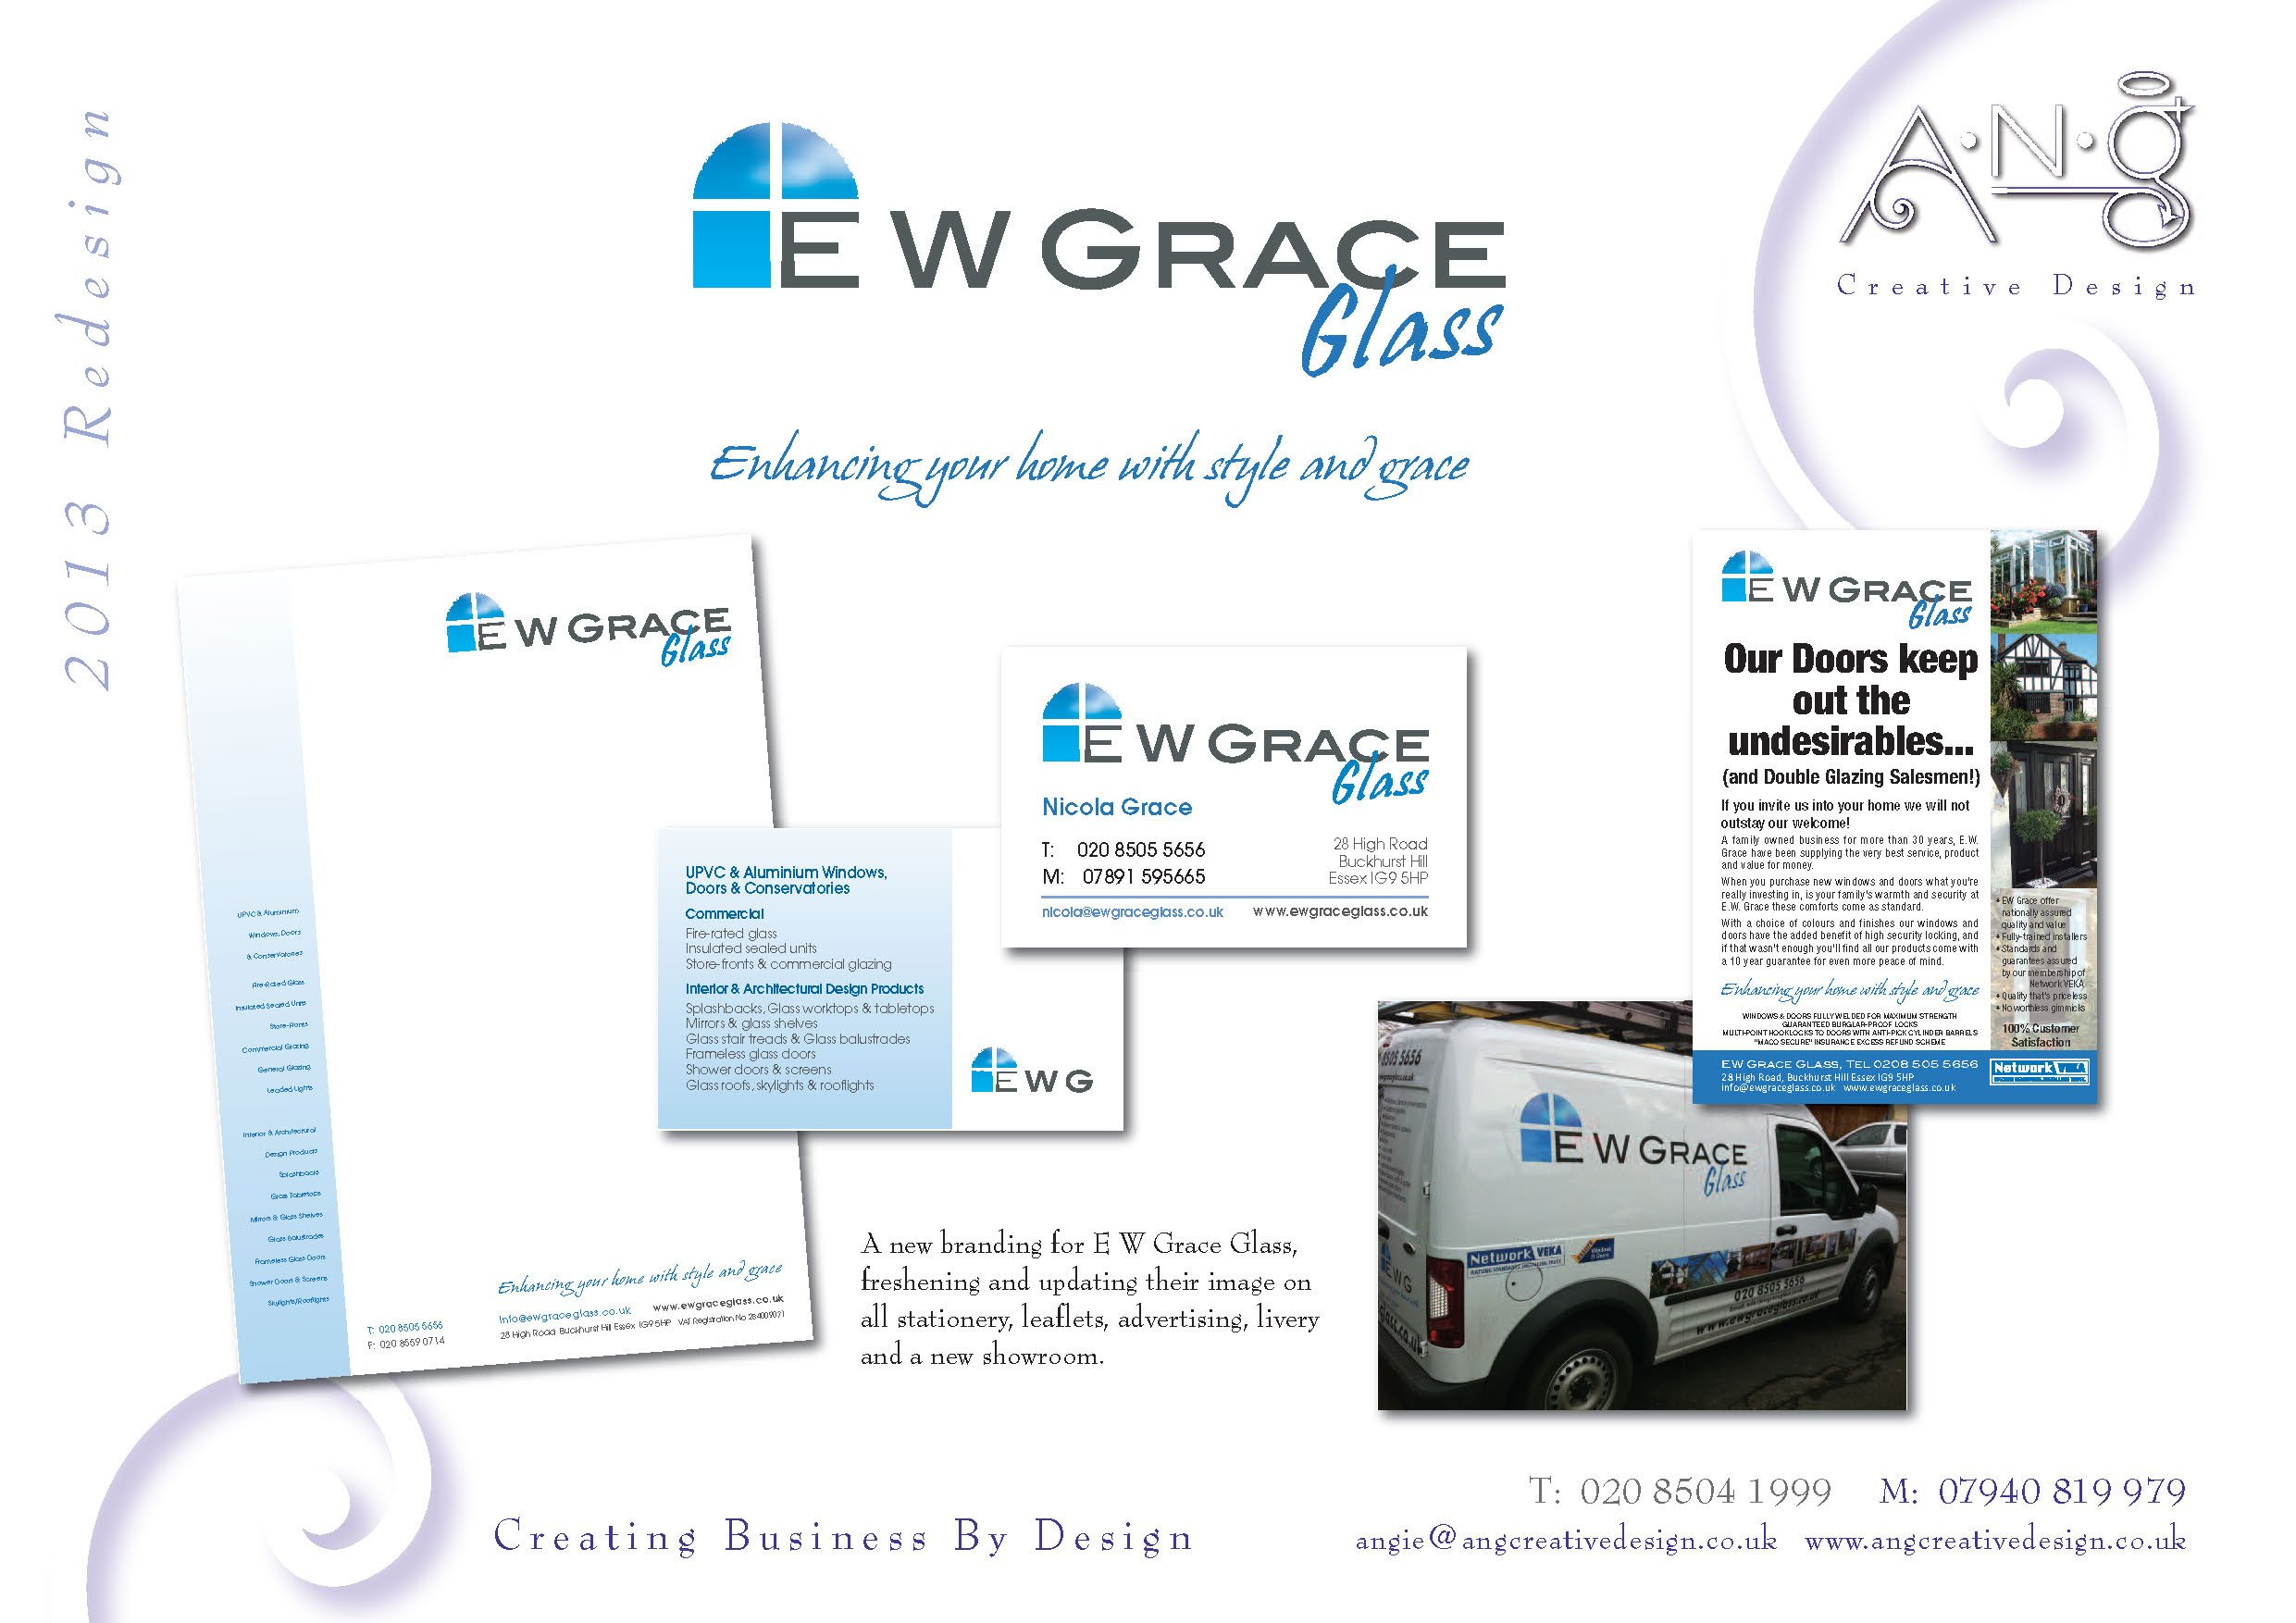 EW Grace Glass branding